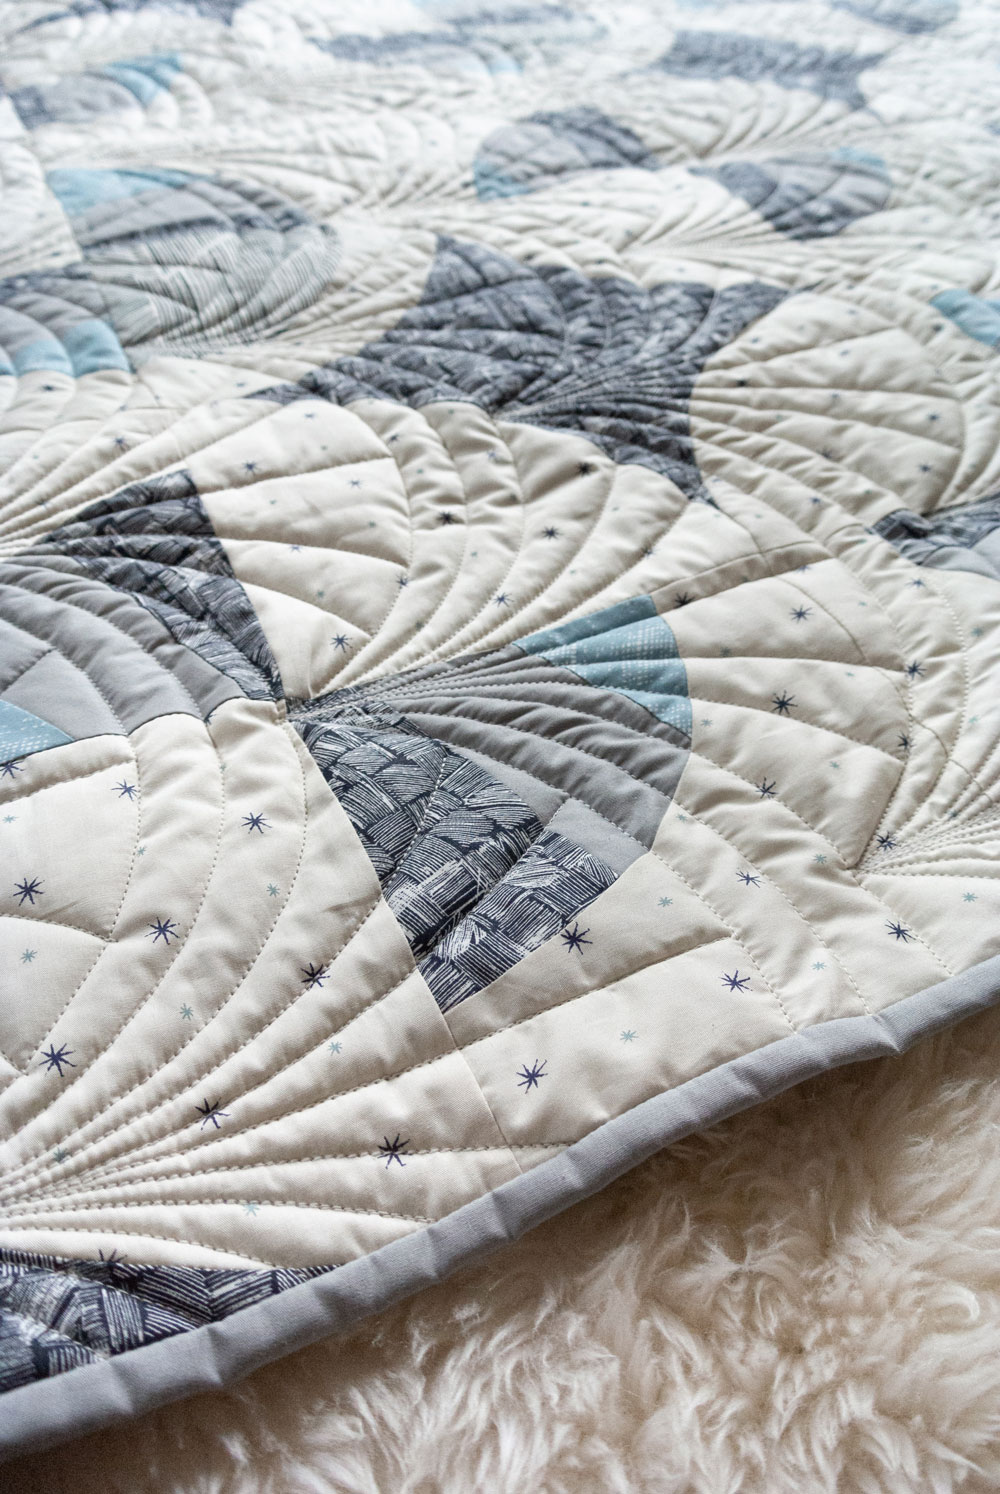 This Great Gatsby inspired Modern Fans quilt kit uses icy blues, grays and metallic silver fabric to bring elegance and pizzazz to a cozy quilt. suzyquilts.com #quiltpattern #quilt #modernfansquilt